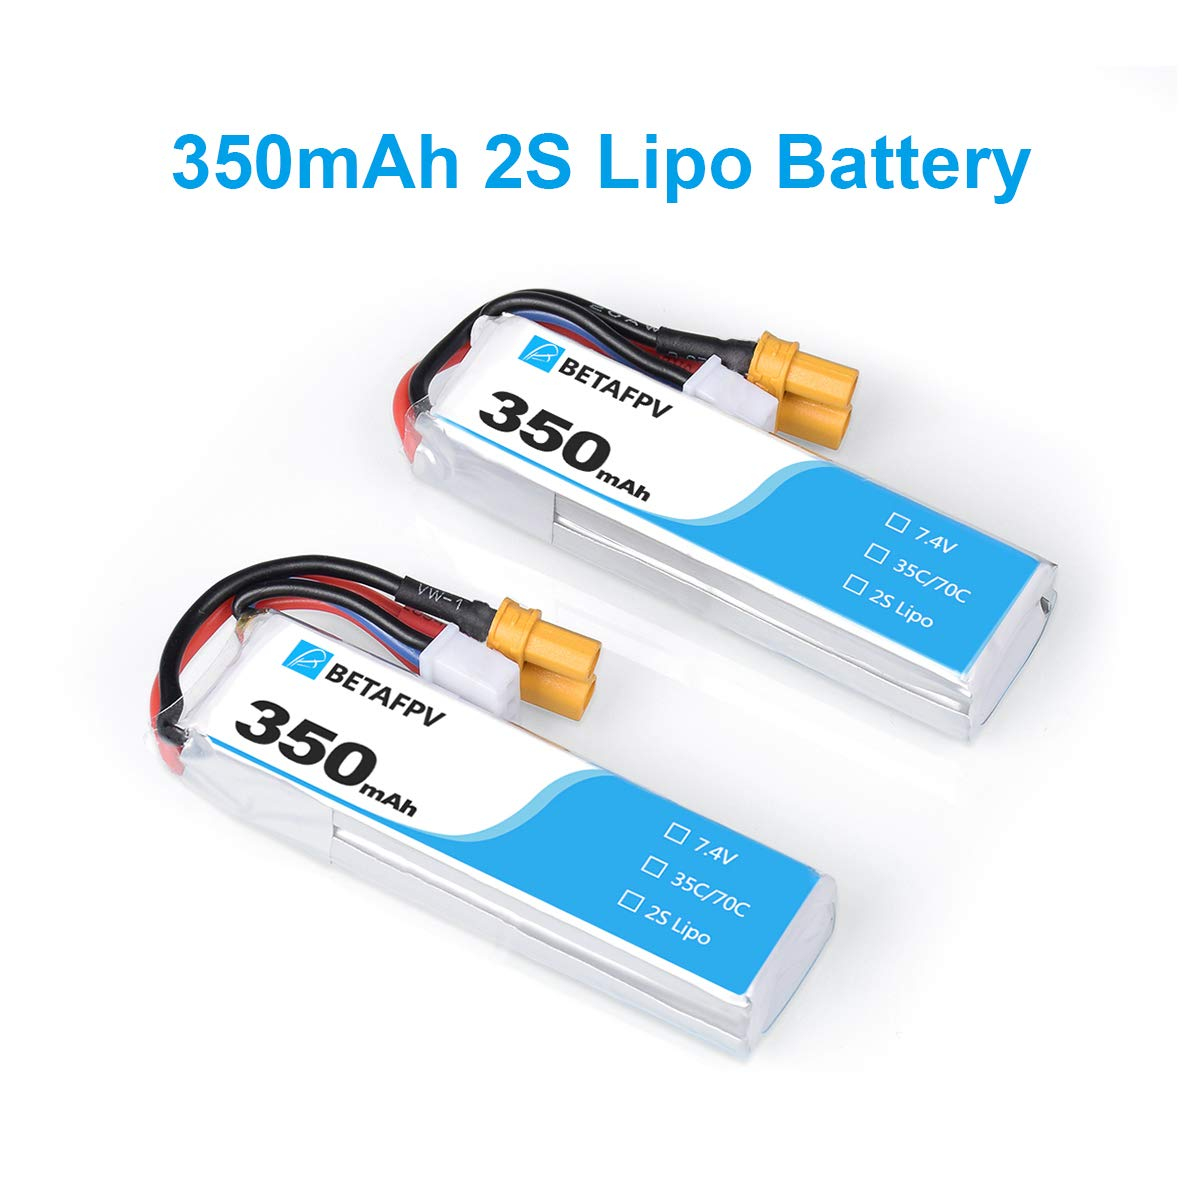 BETAFPV 2pcs 350mAh 2S Lipo Battery HV Battery 35C/70C 7.4V with XT30 20AWG Silicone Wire for 2S